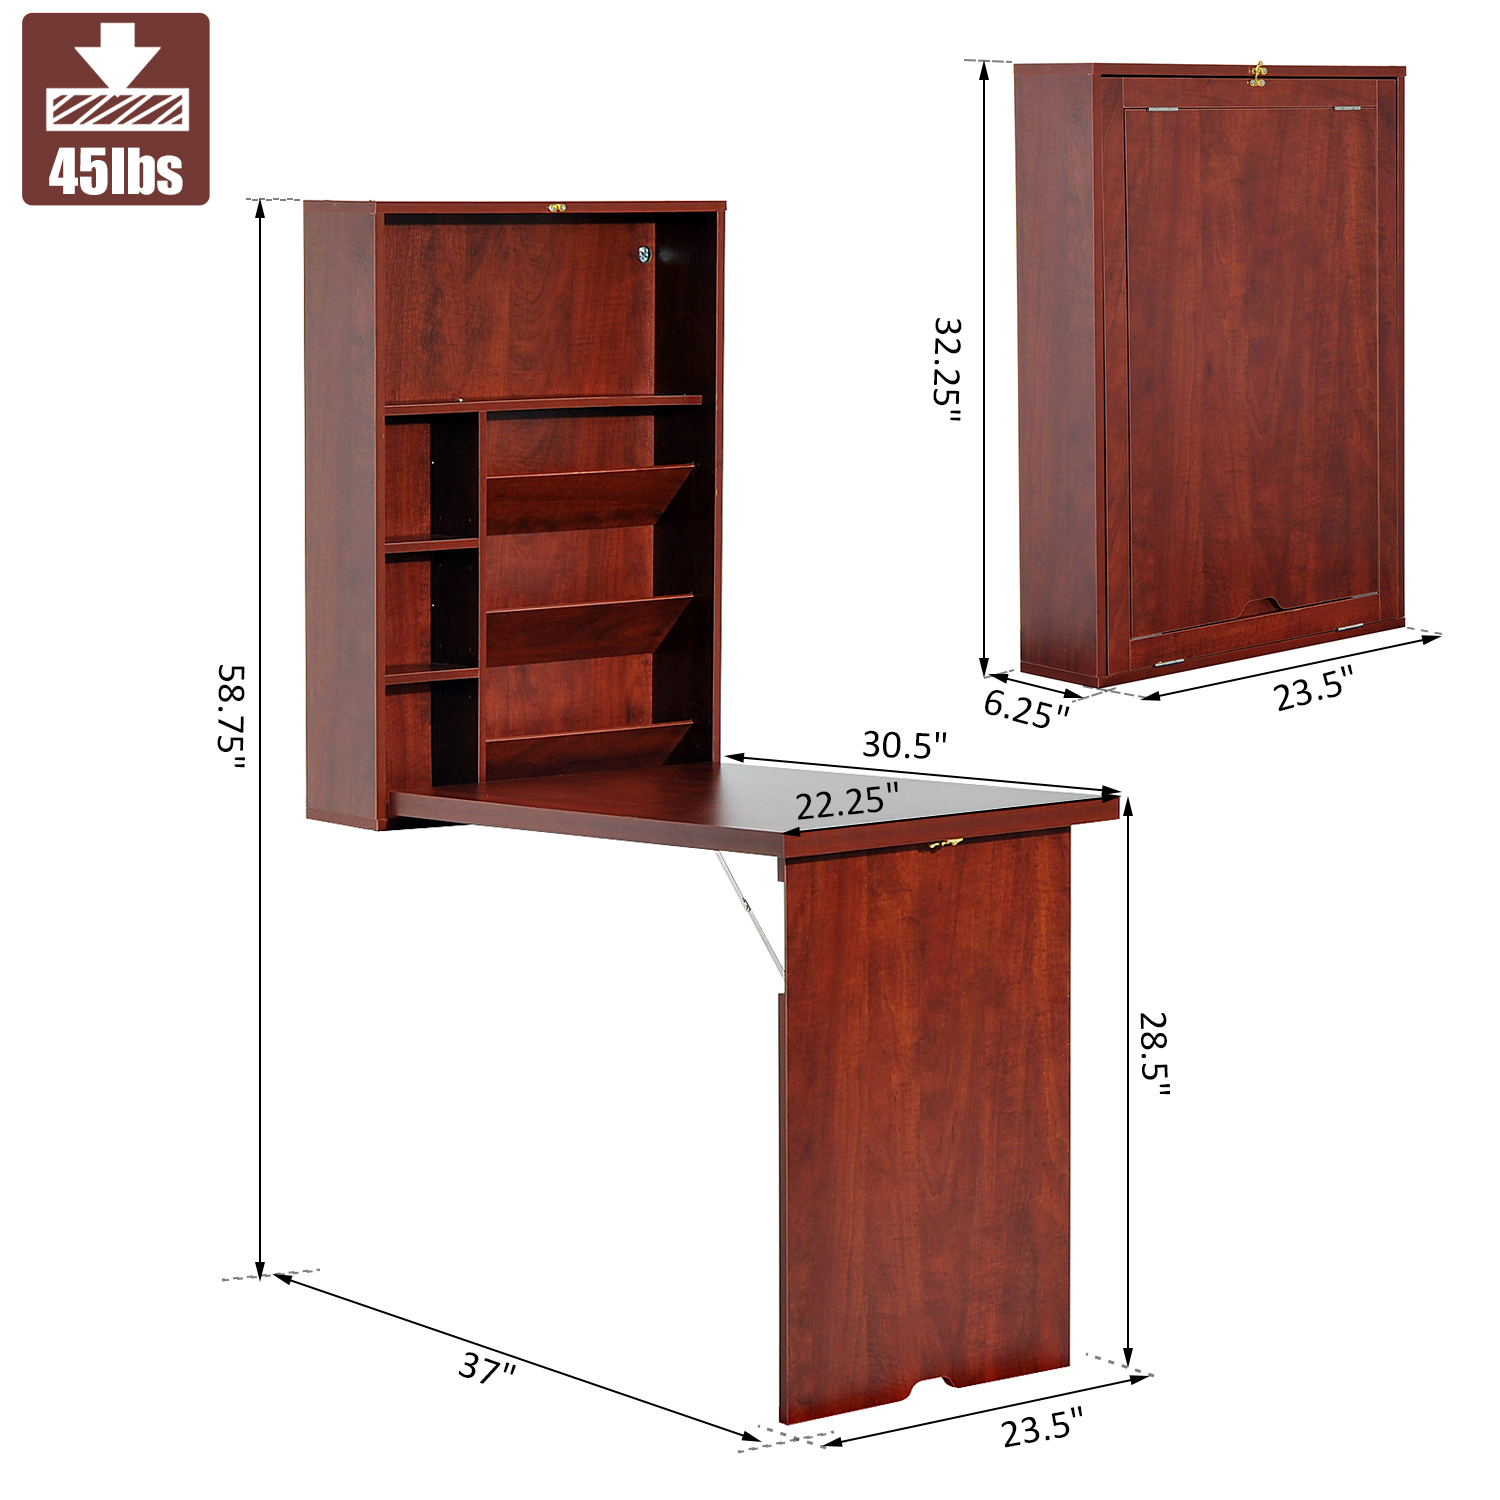 Details about Wall Mount Writing Table Convertible Folding Computer Desk  Storage Home Office